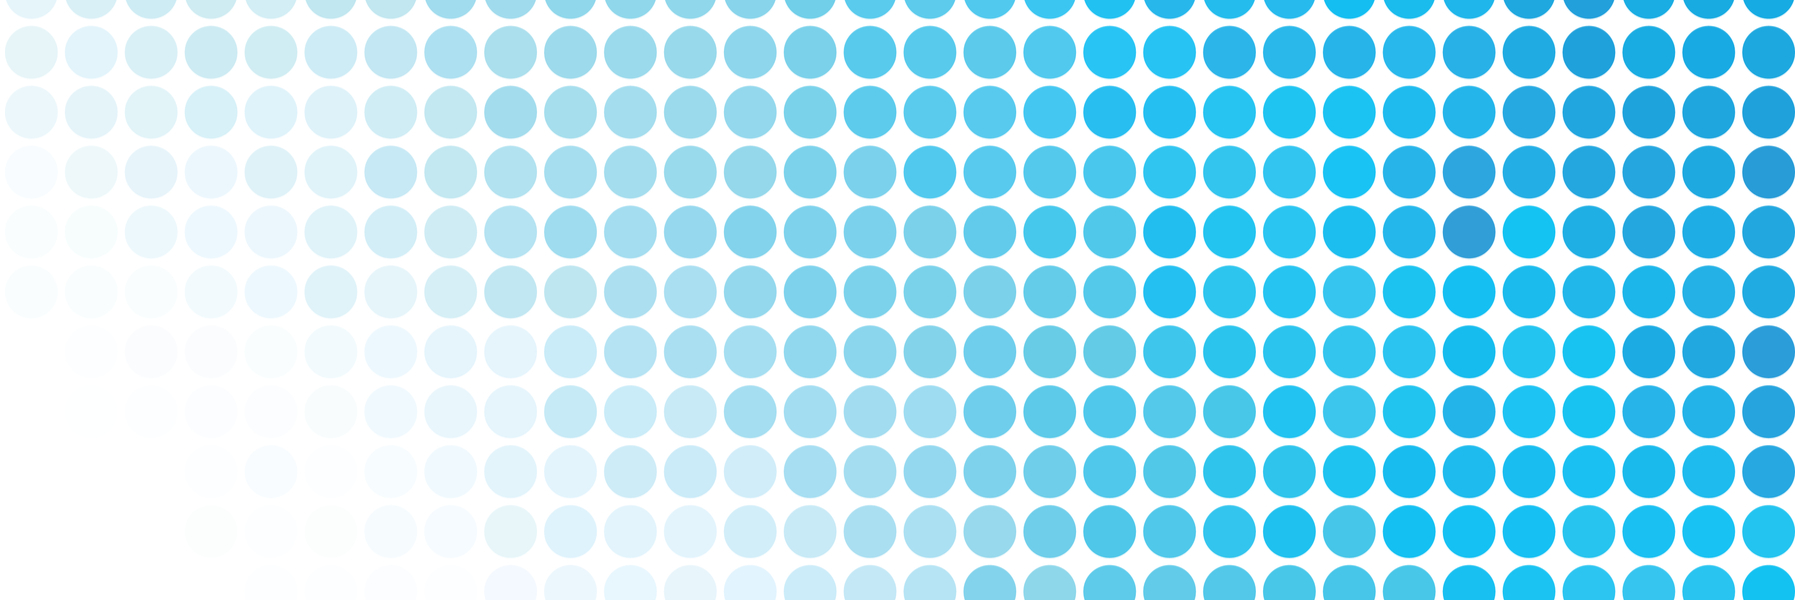 Pattern of blue dots.